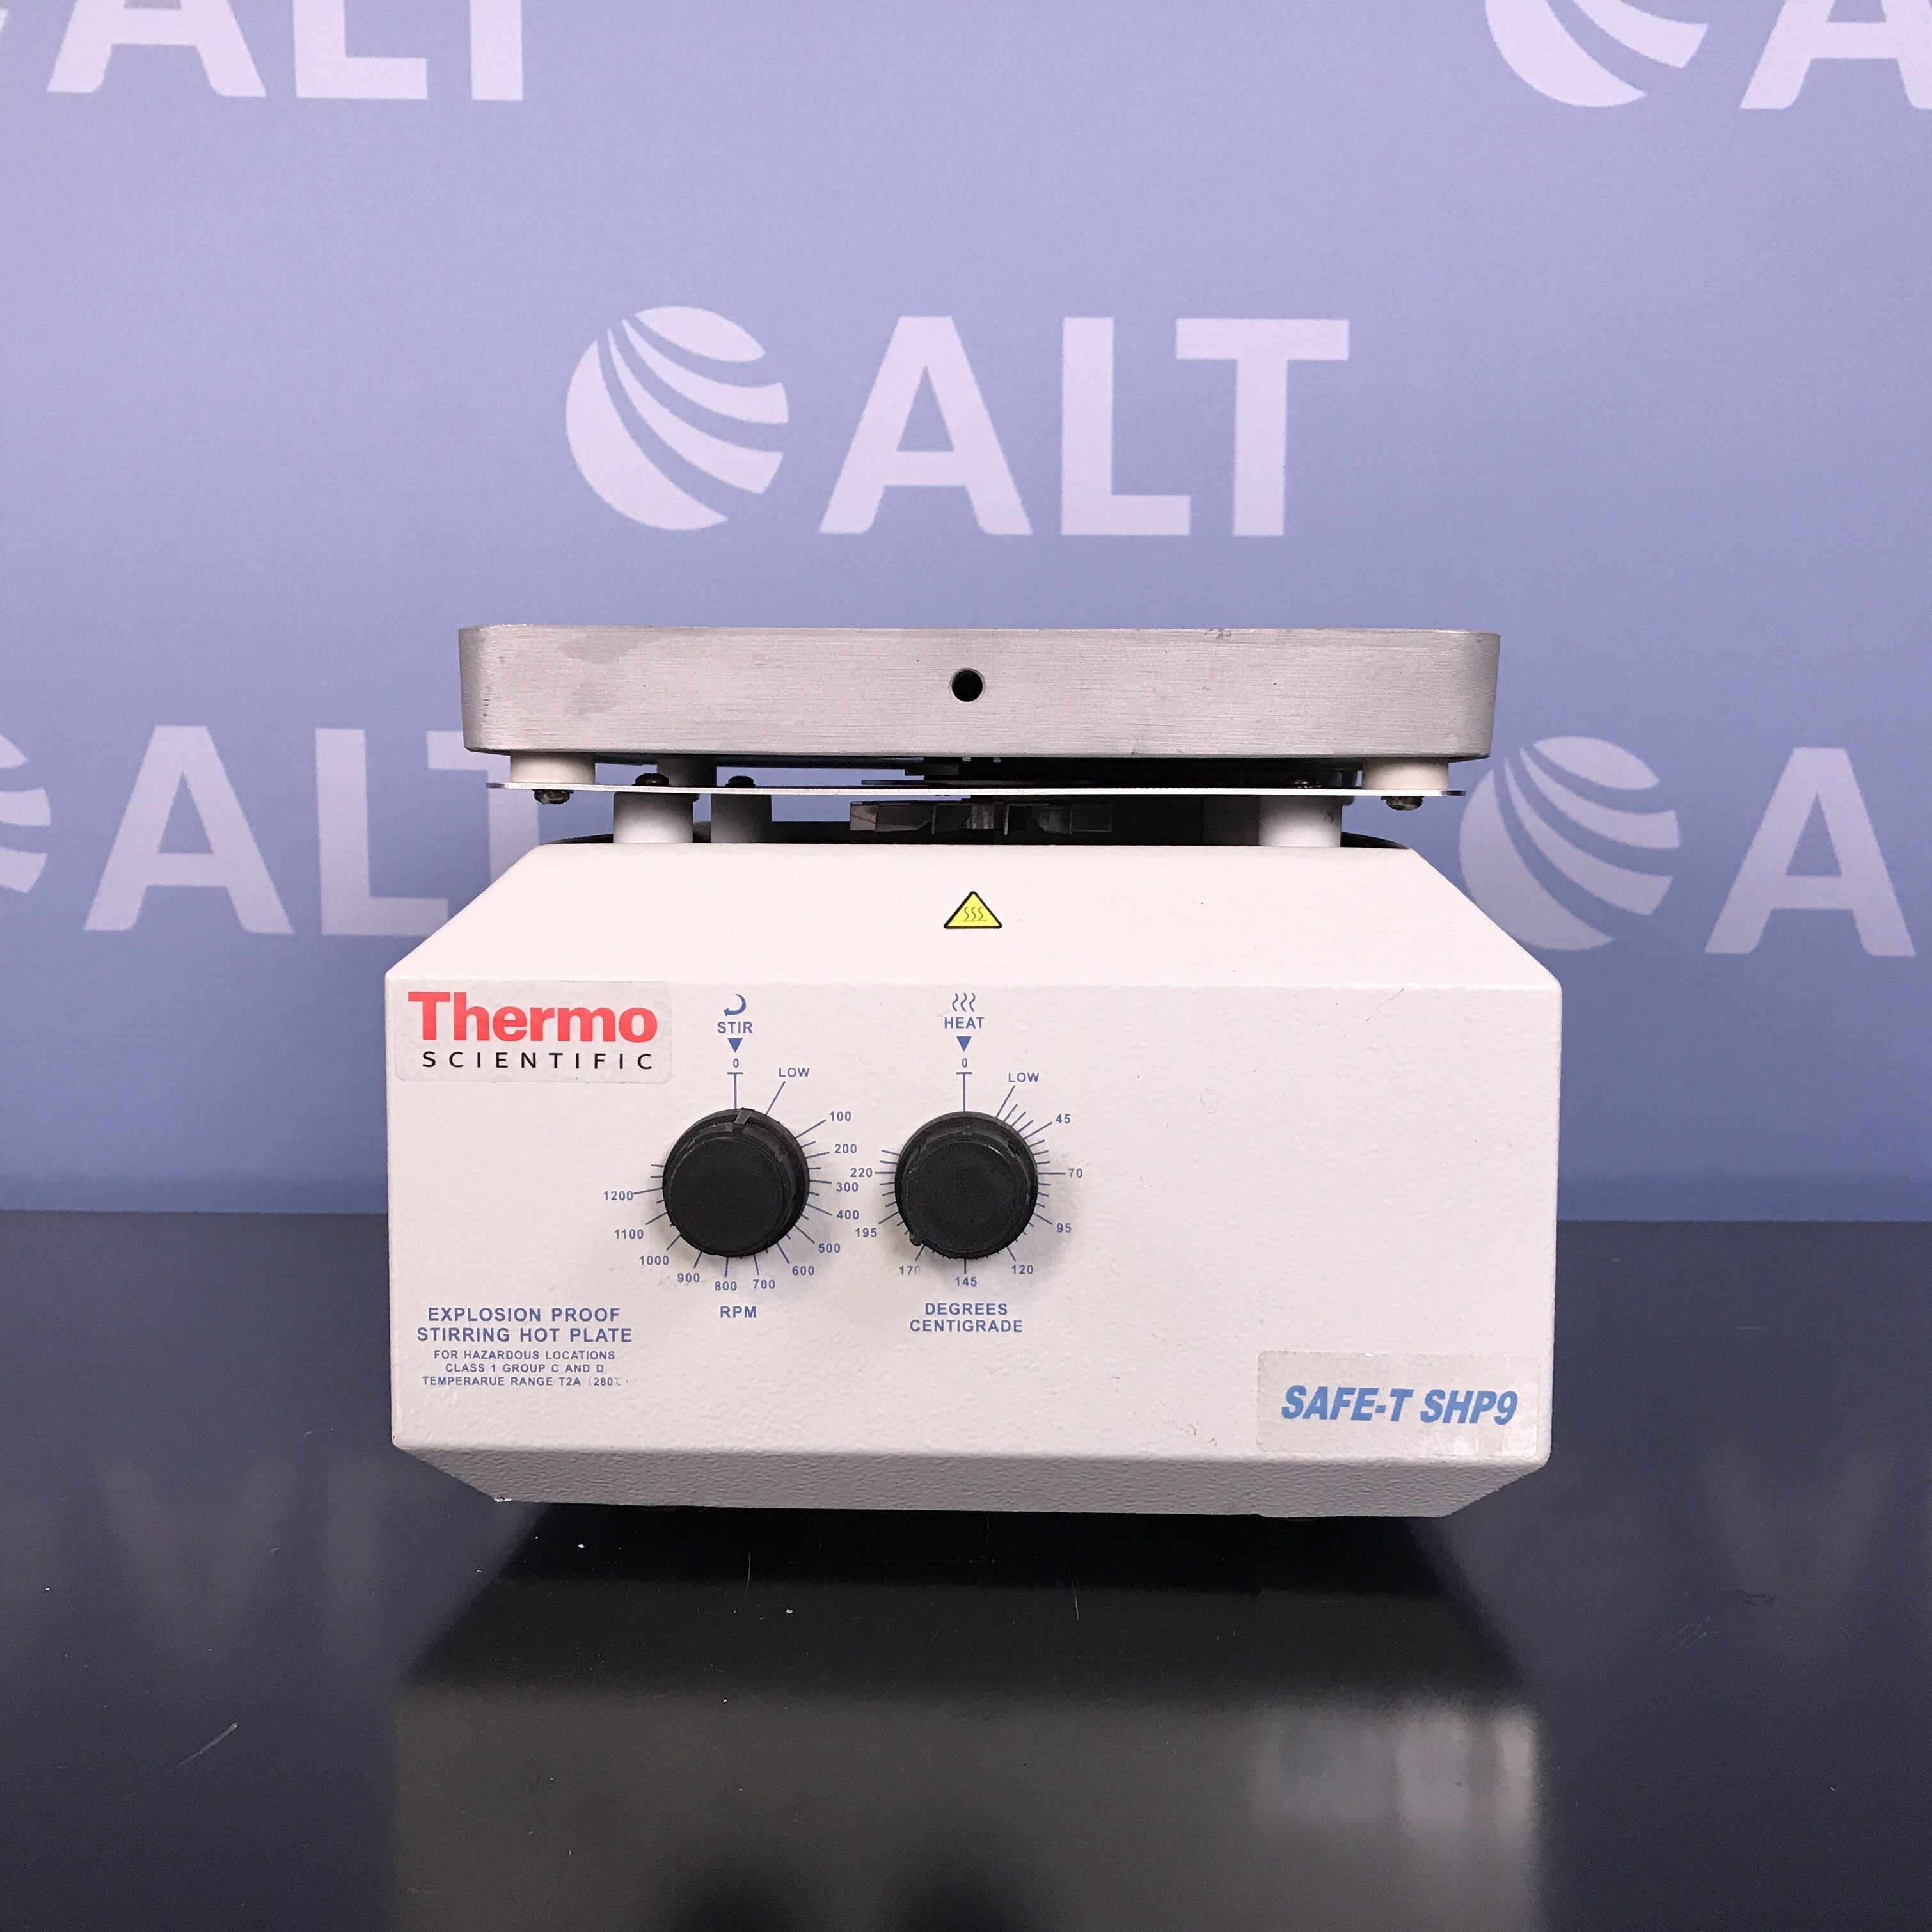 Thermo Scientific Explosion-Proof SAFE-TSHP9 Stirring Hot Plate Image